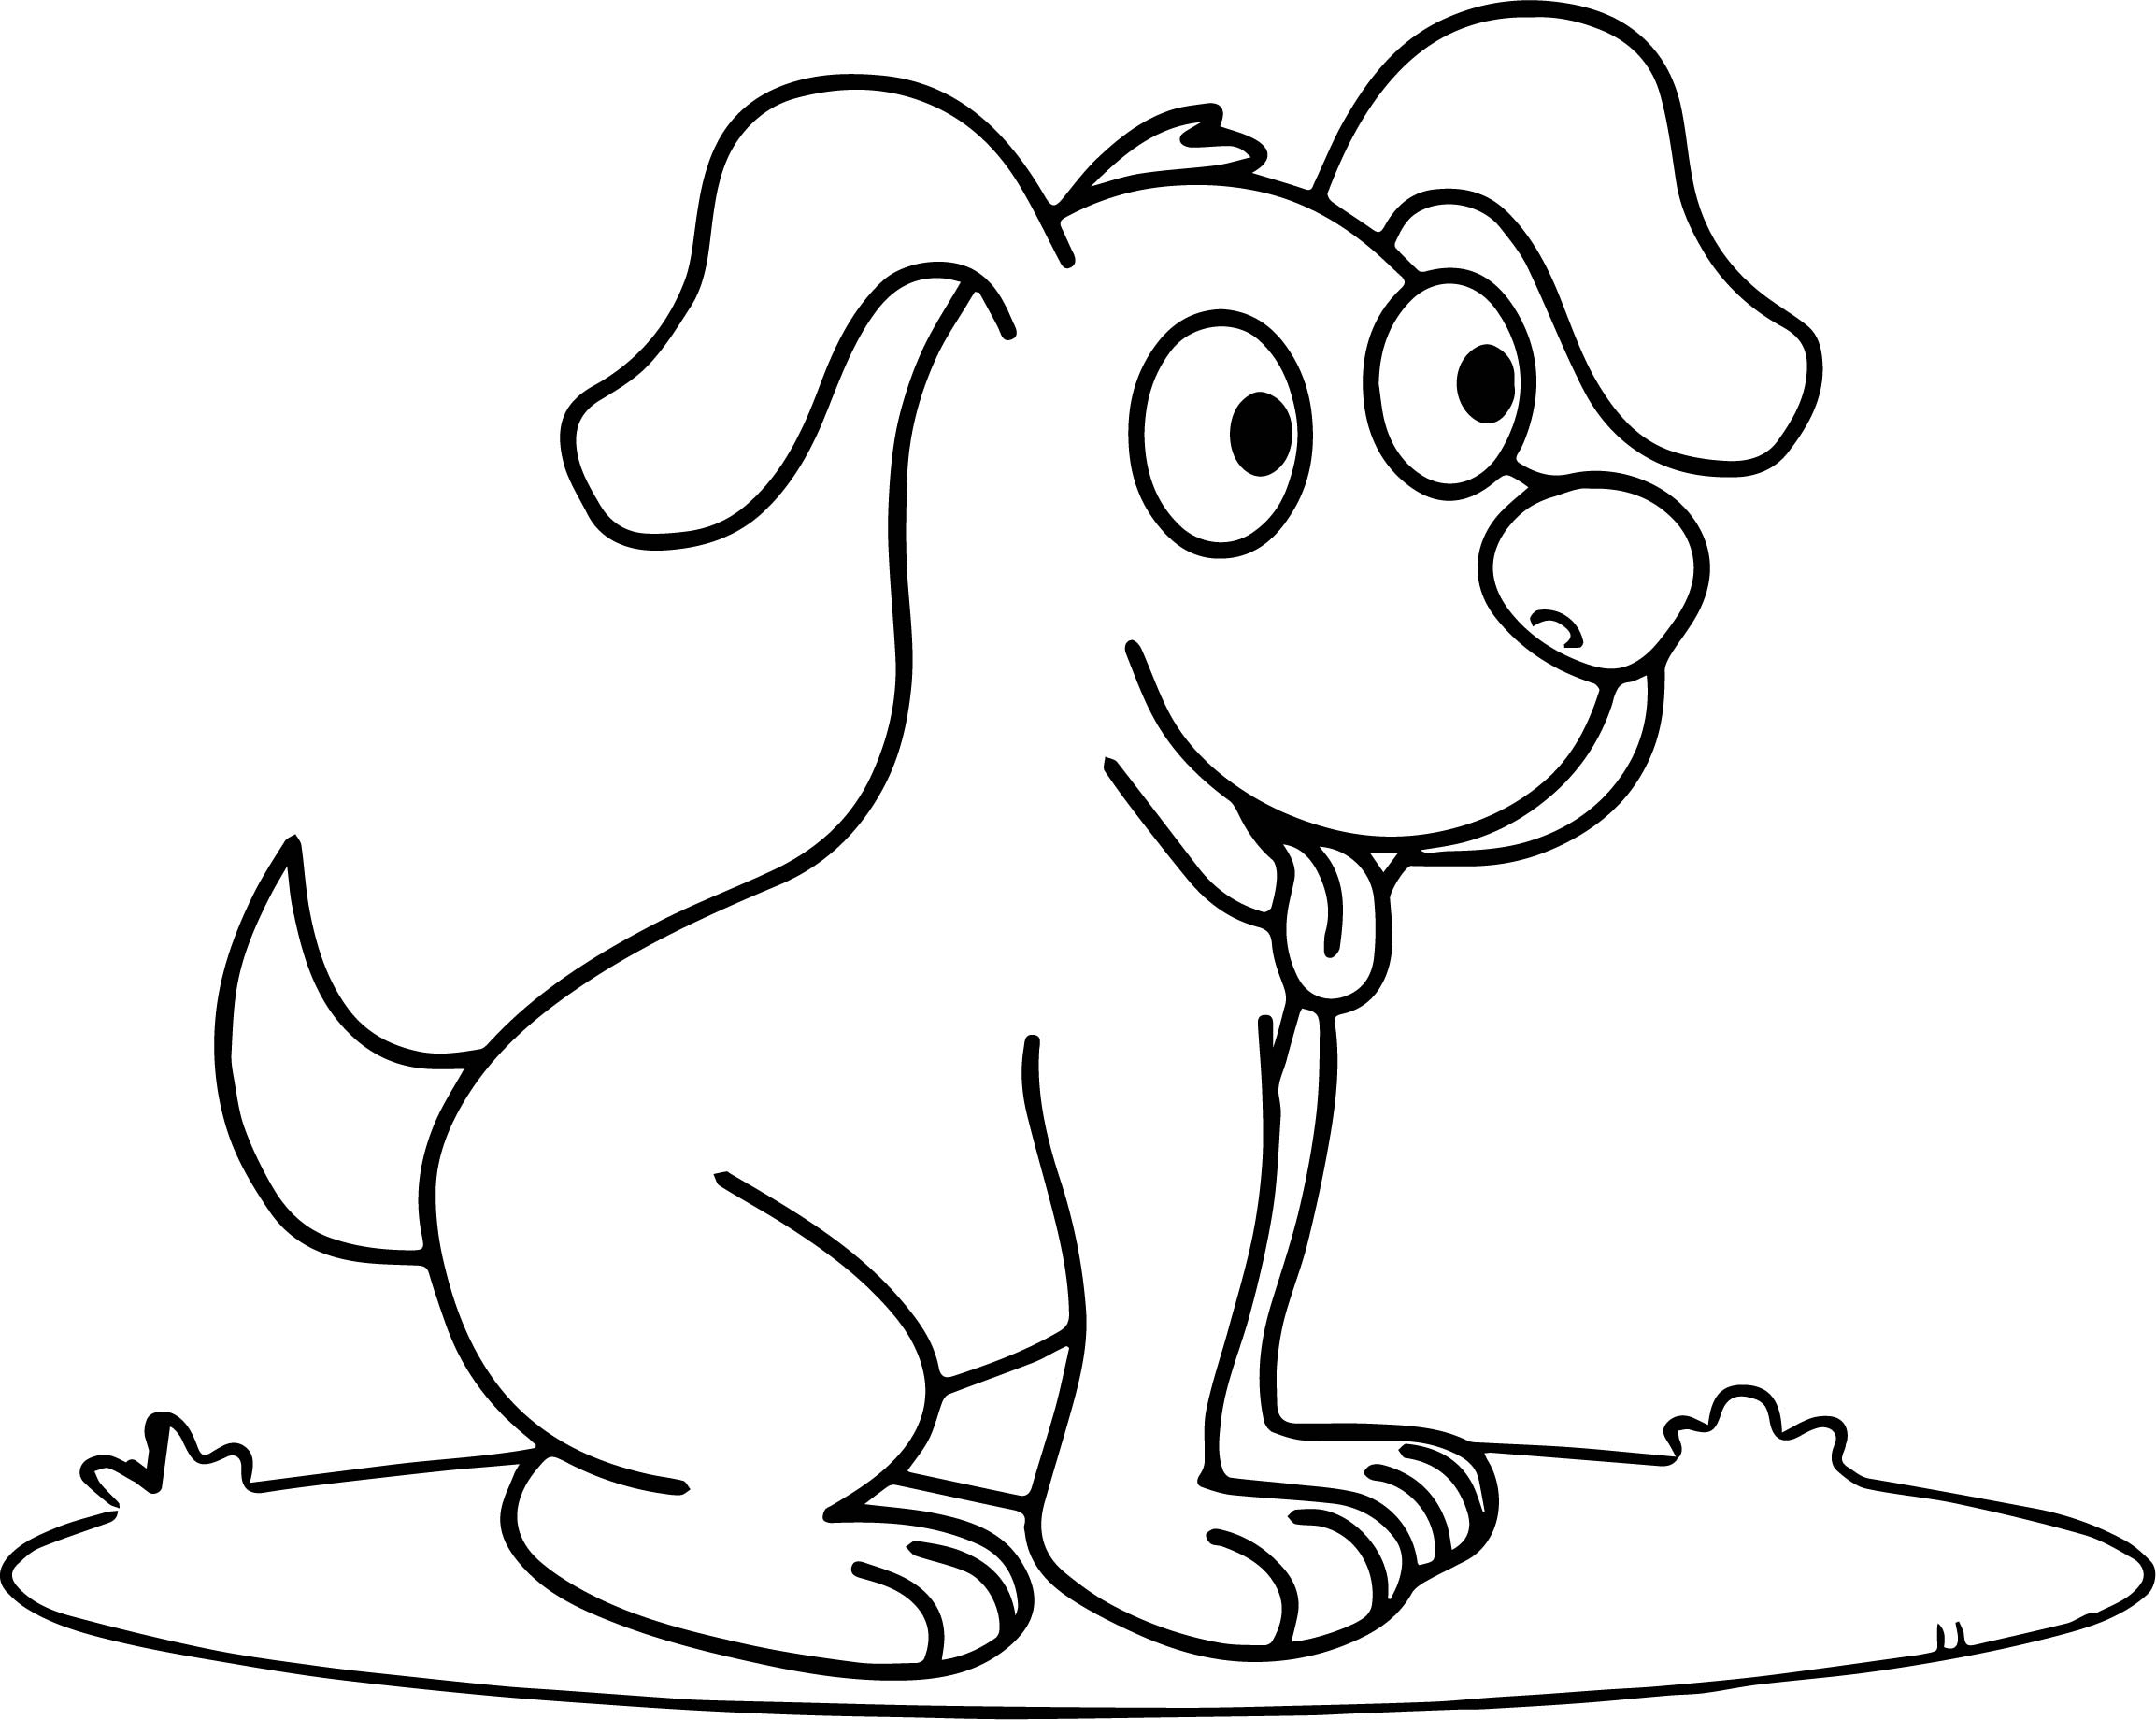 Puppy Cartoon Coloring Pages At Getdrawings